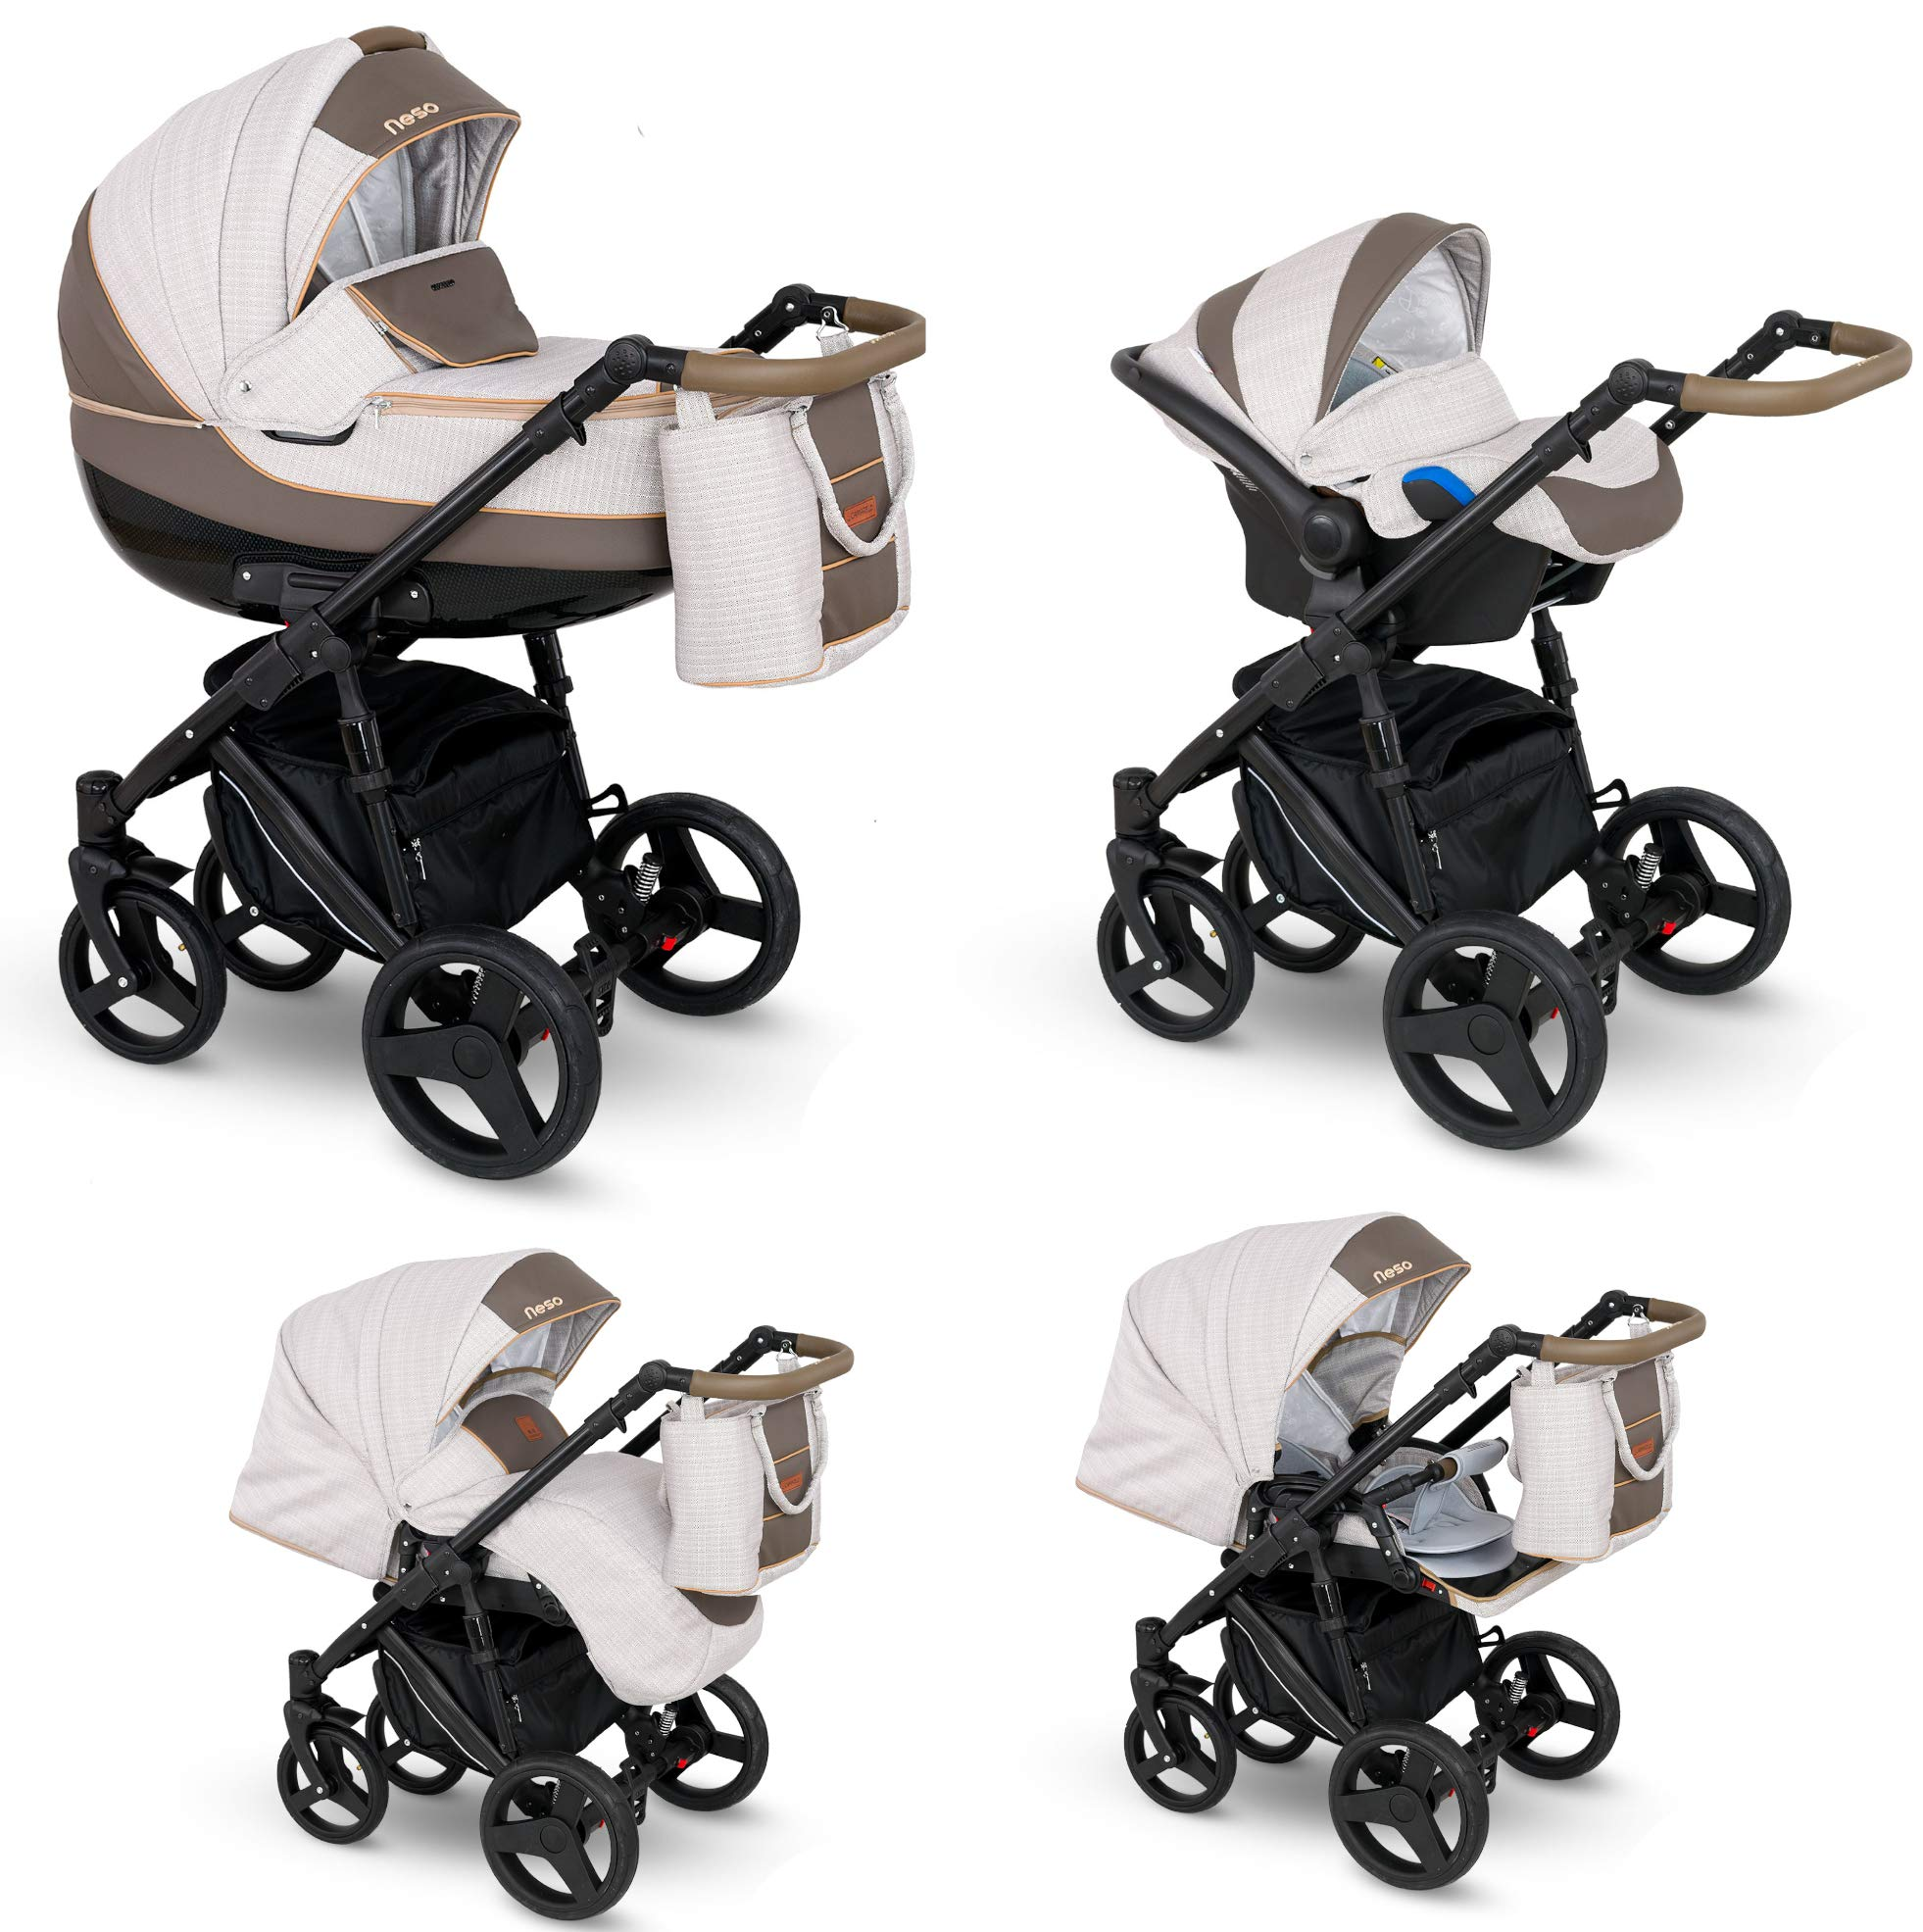 Lux4Kids Stroller Pram 2in1 3in1 Isofix Car seat 12 Colours Free Accessories NEO Brown Sand NE-6 4in1 car seat +Isofix Lux4Kids Lux4Kids Leo 3in1 or 2in1 pushchair. You have the choice whether you need a car seat (baby seat certified according to ECE R 44/04 or not). Of course the car is robust, safe and durable Certificate EN 1888:2004, you can also choose our Zoe with Isofix. The baby bath has not only ventilation windows for the summer but also a weather footmuff and a lockable rocker function. The push handle adapts to your size and not vice versa, the entire frame is made of a special aluminium alloy with a patented folding mechanism. 1